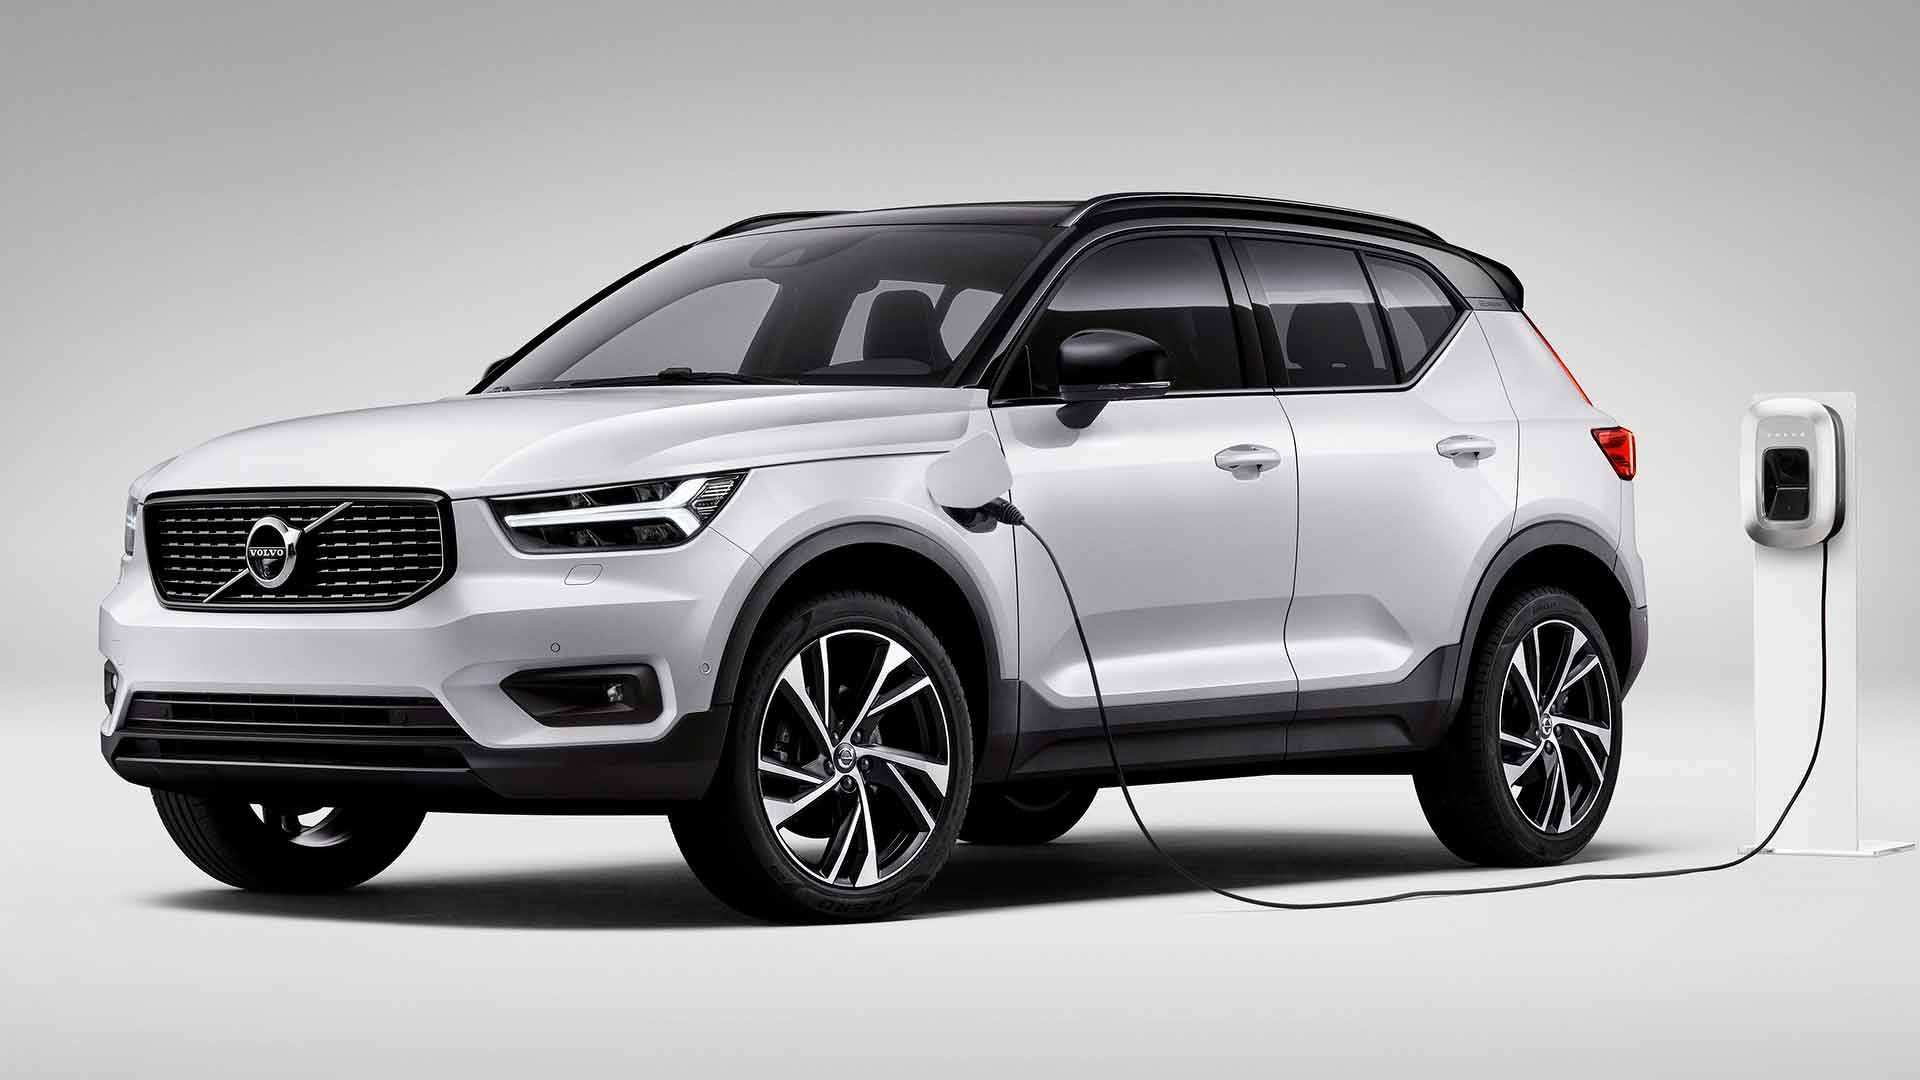 43 The Volvo Xc40 2020 Release Date Rumors by Volvo Xc40 2020 Release Date